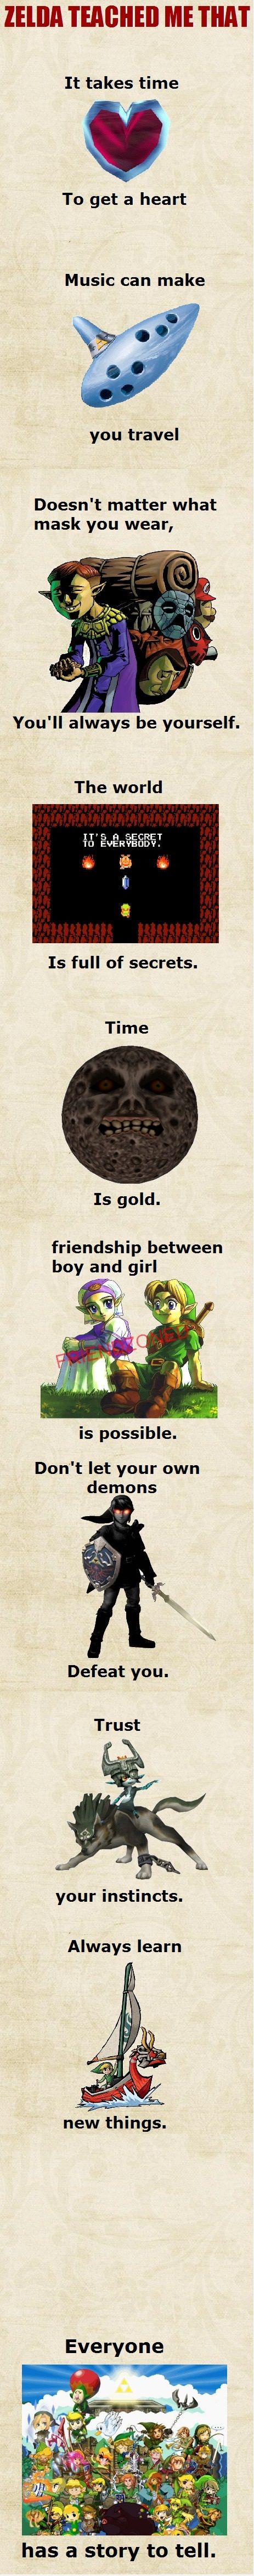 """Love it except that the first line is grammatically incorrect and should be """"Zelda taught me that"""""""